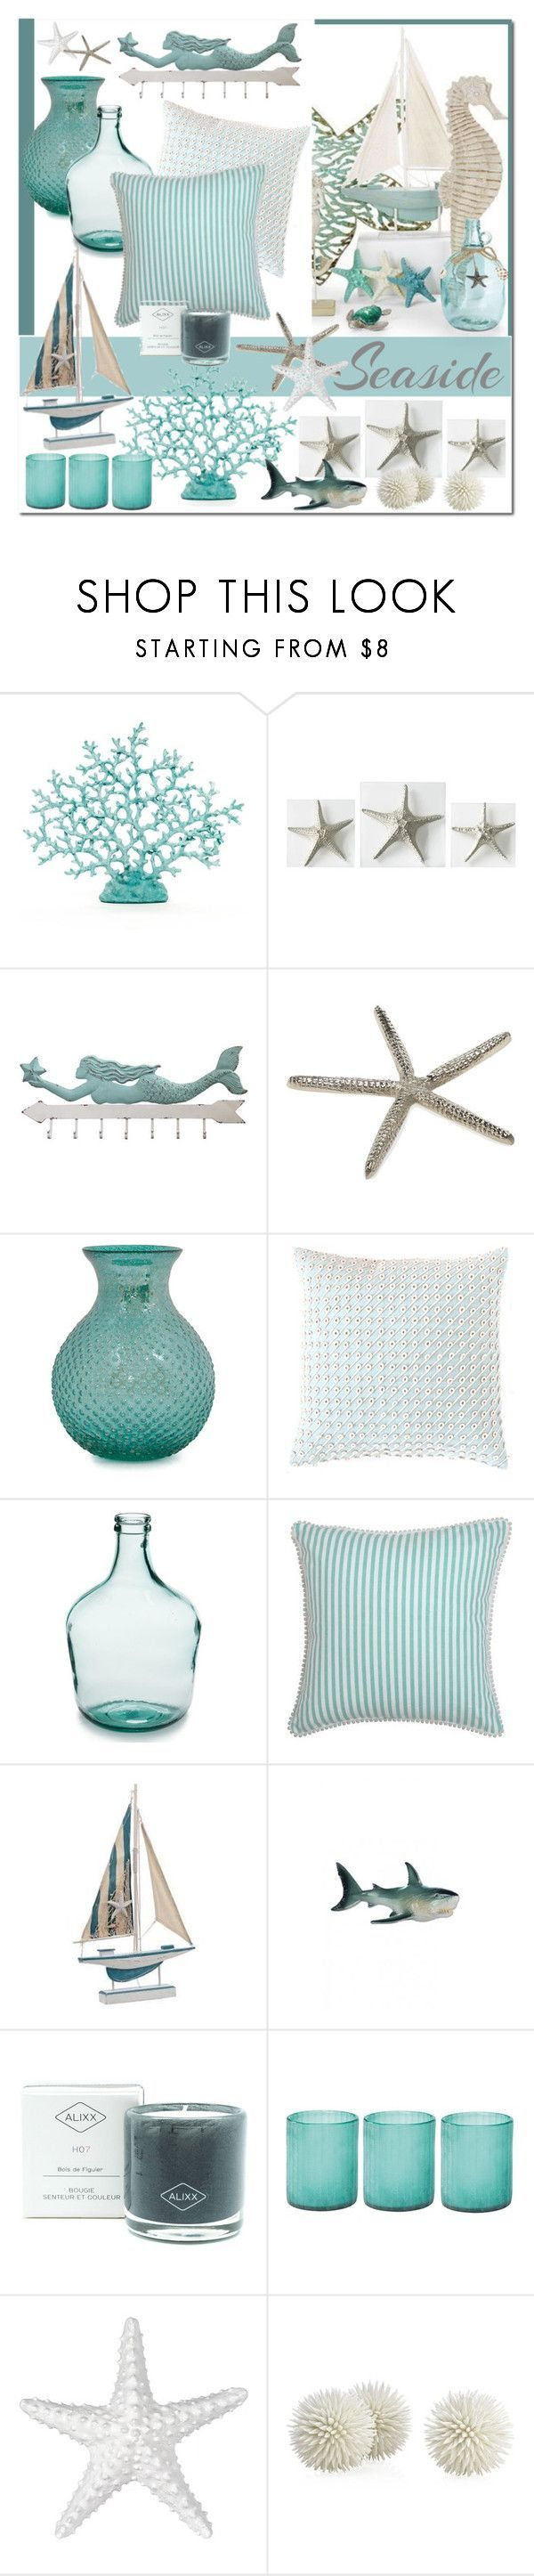 """Beach House Decor"" by brendariley-1 ❤ liked on Polyvore featuring interior, interiors, interior design, home, home decor, interior decorating, Dot & Bo, Pine Cone Hill, ALIXX and Jamie Young"